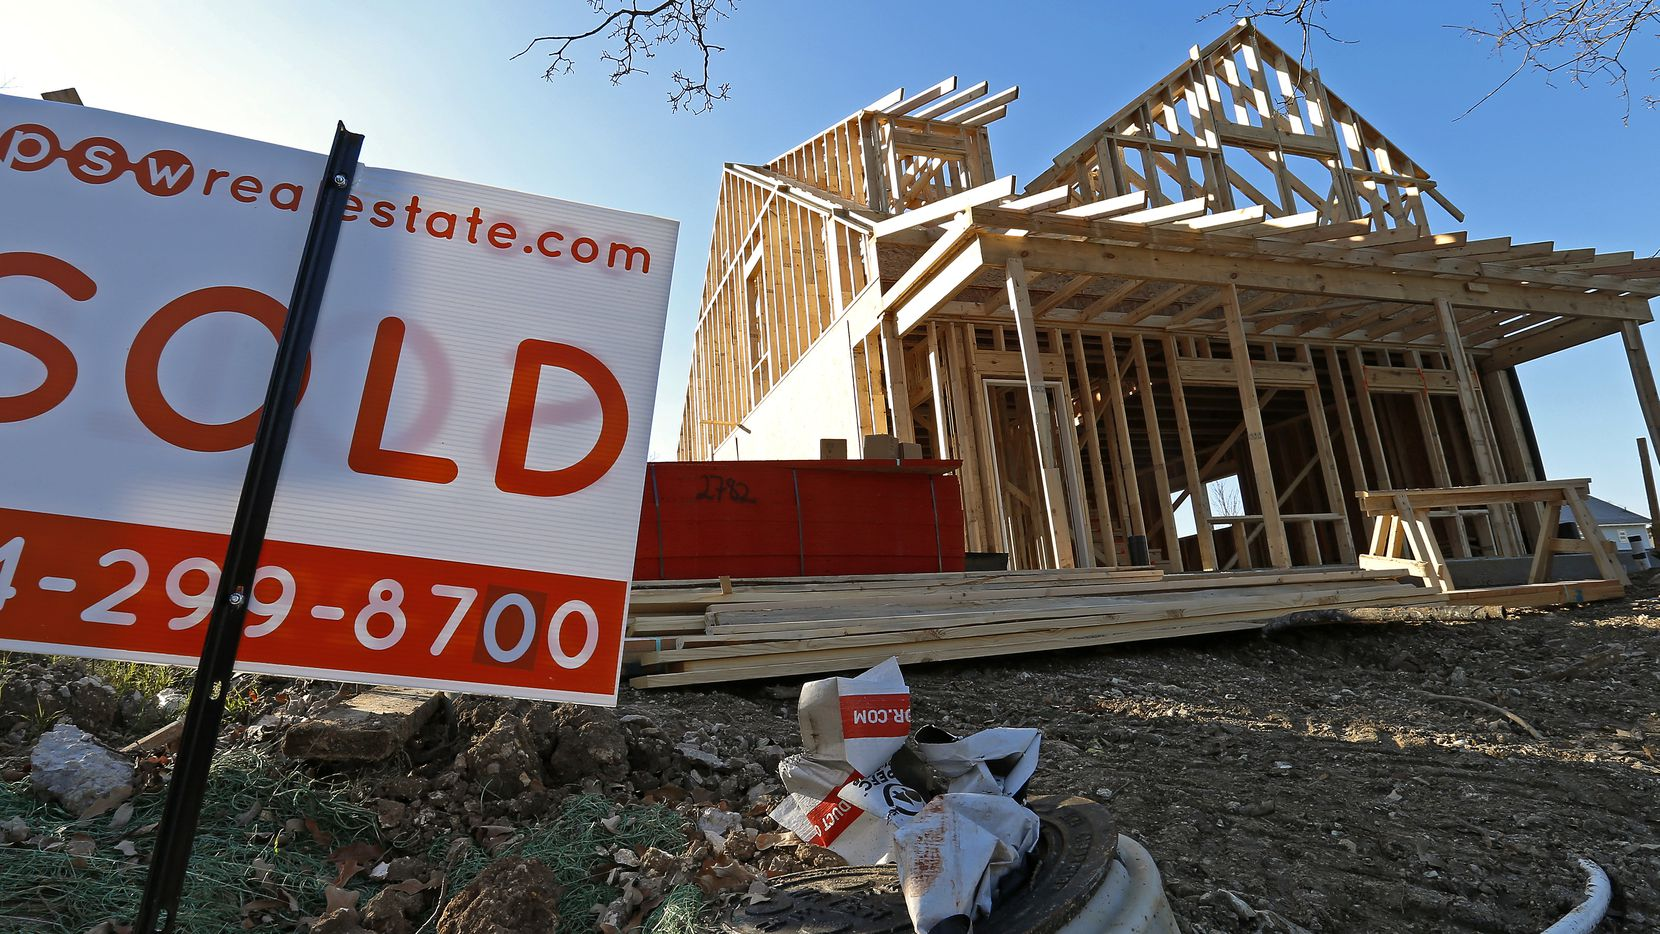 Builders started almost 34,000 homes in D-FW in 2017,